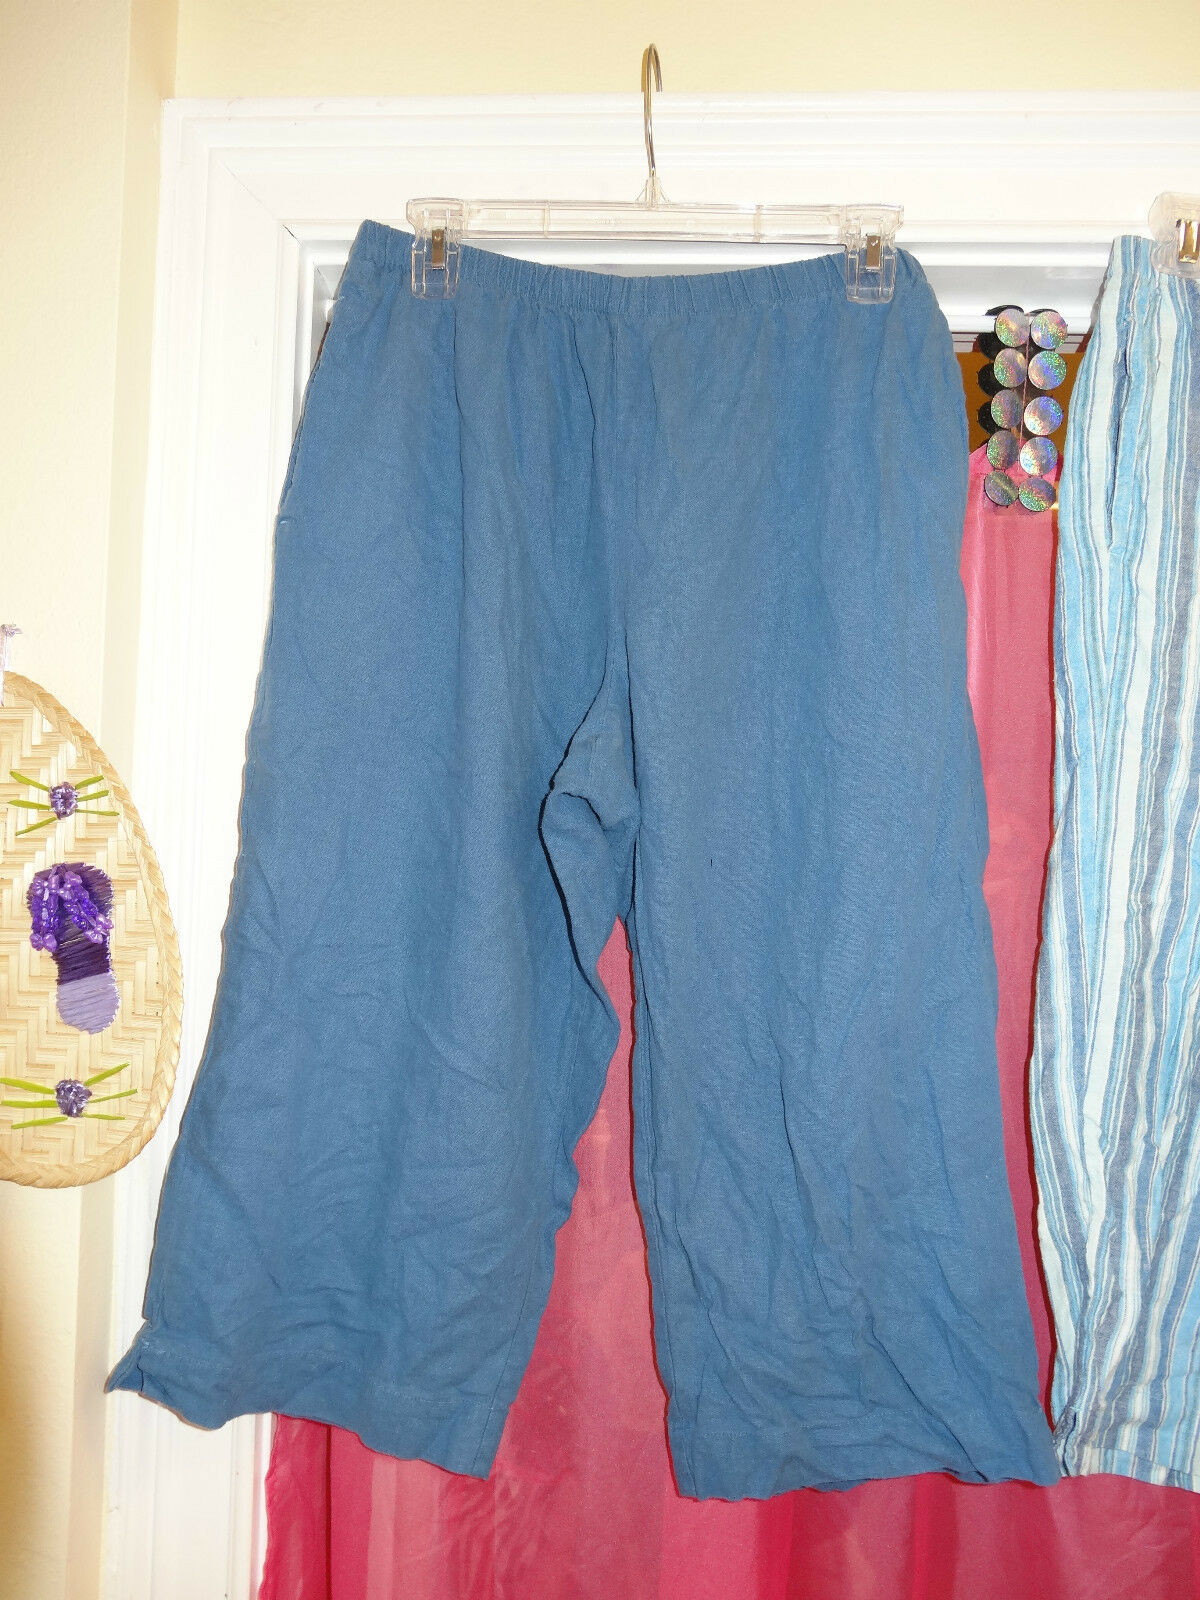 IOS Capri's Capri Cropped Pants bluee Size Petite Large PL